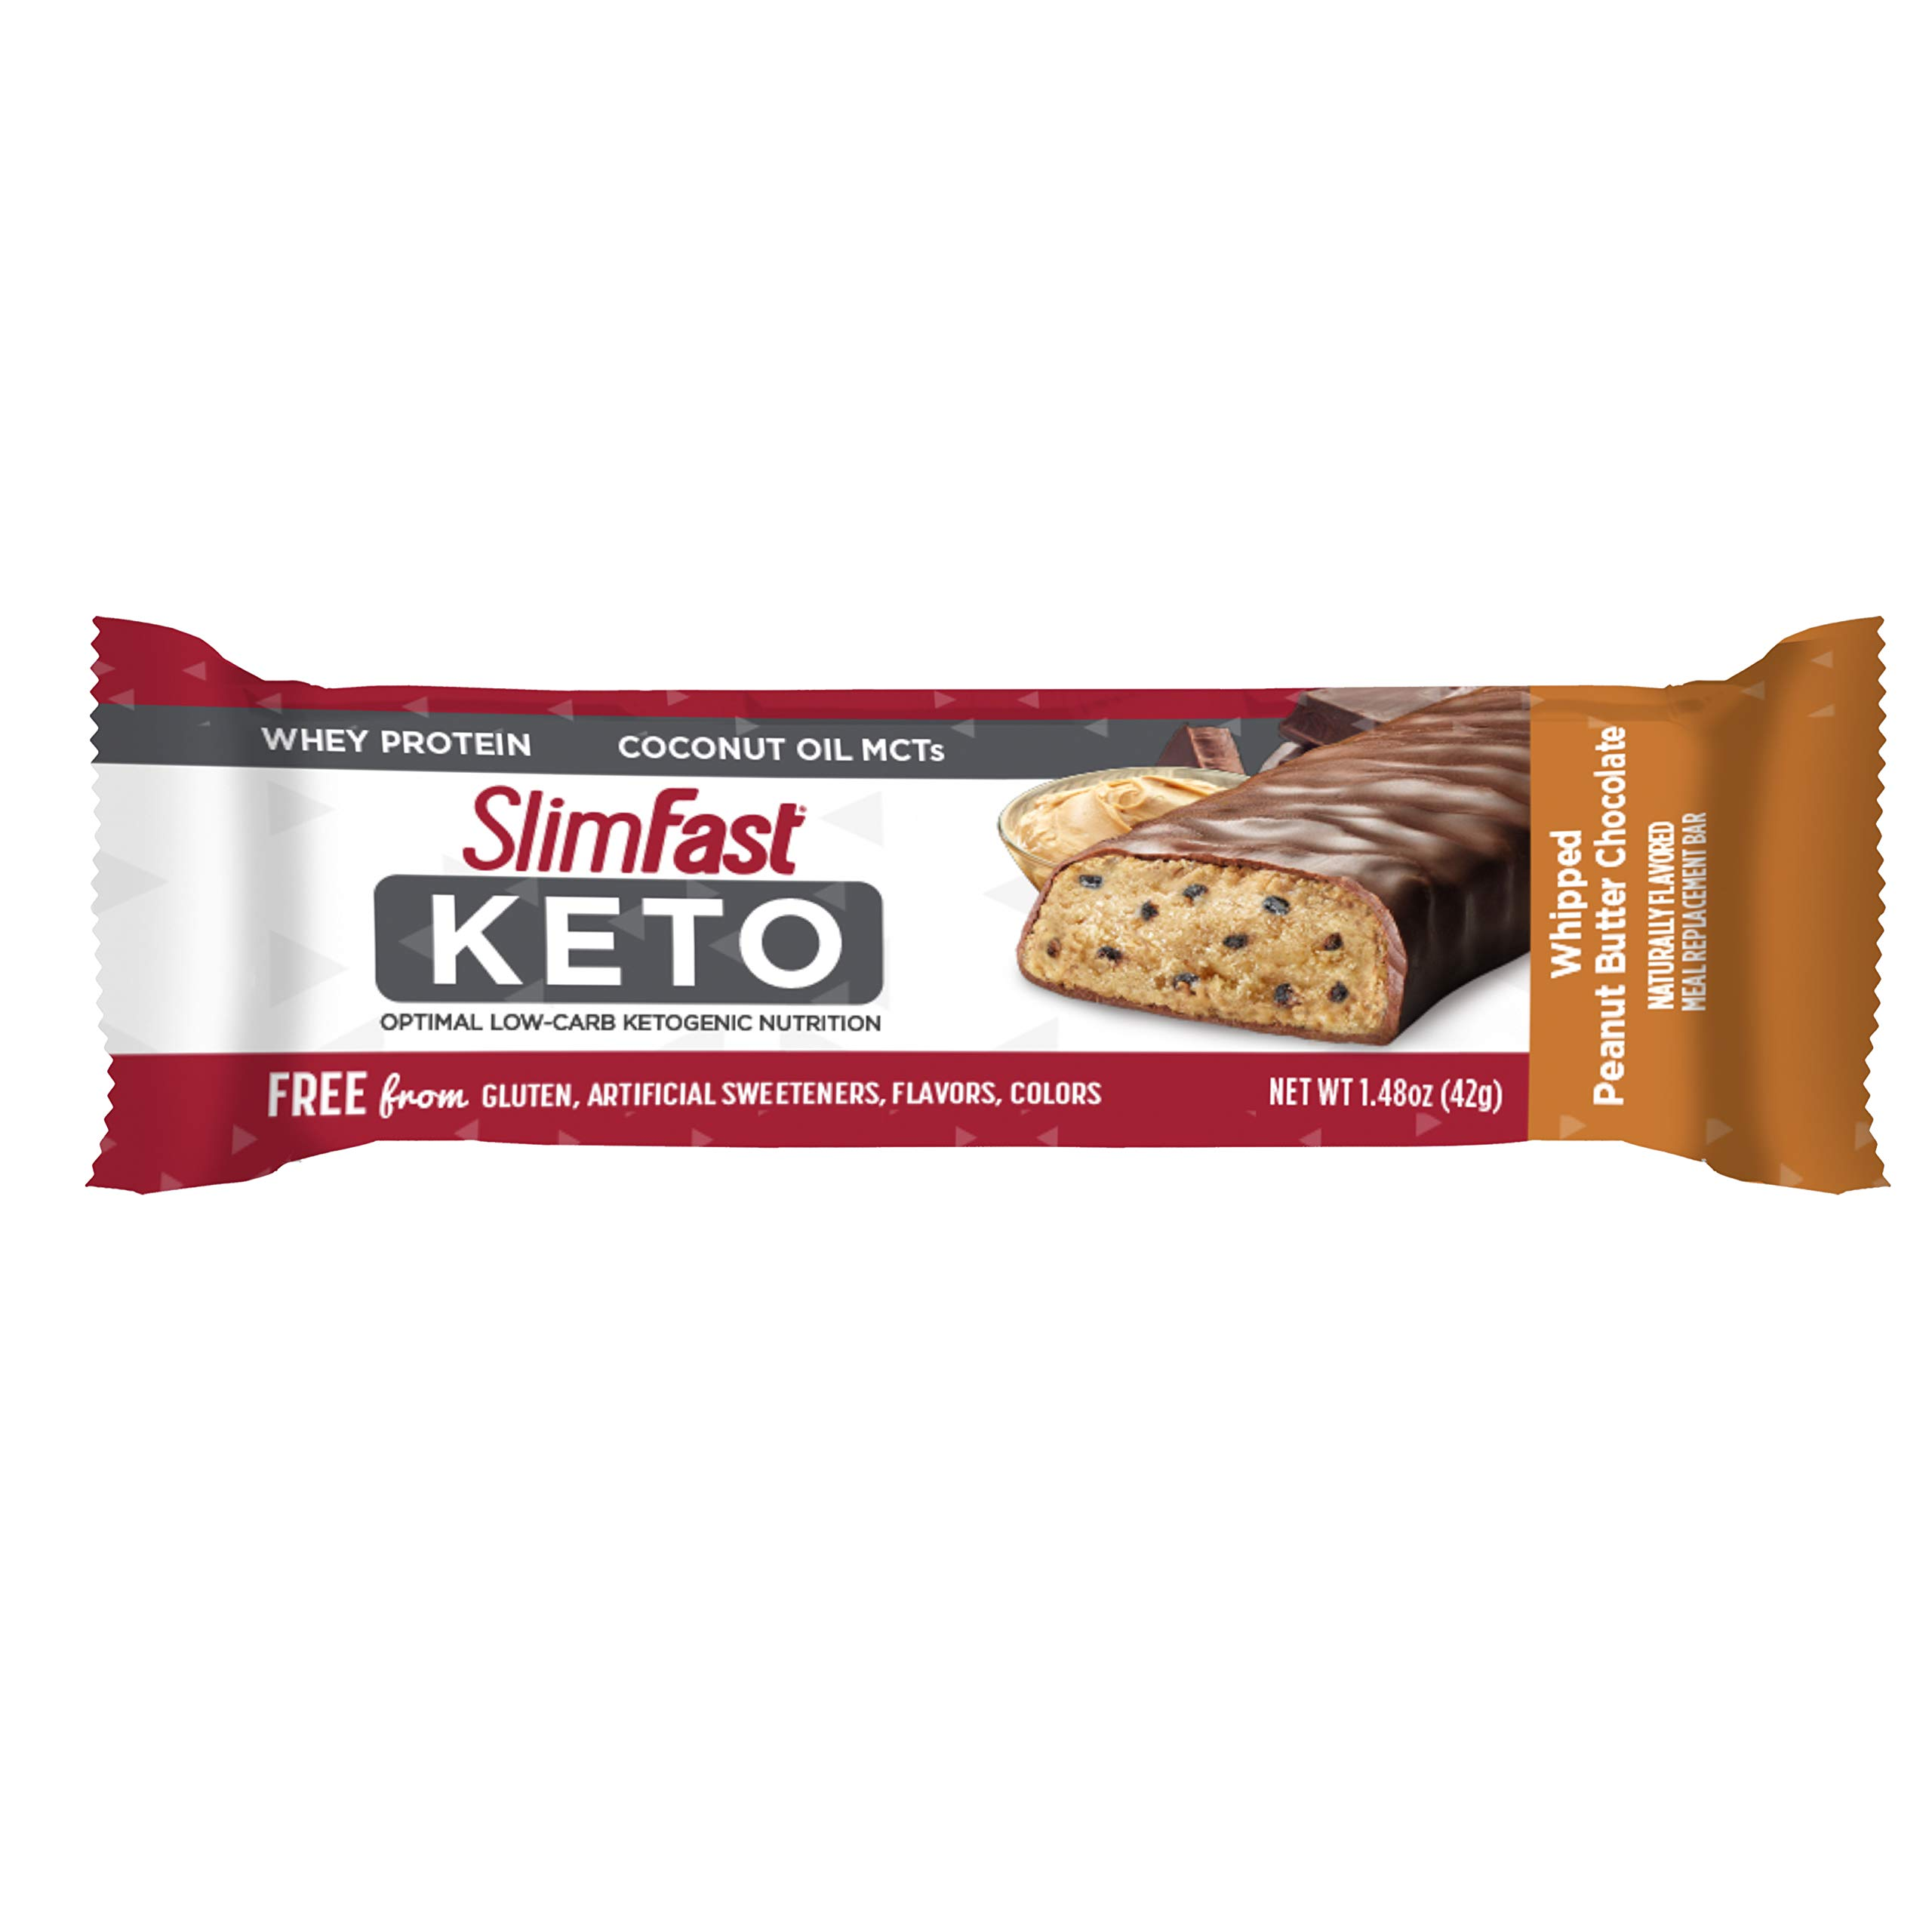 SlimFast 4 Piece Keto Meal Replacement Bar Peanut Butter Chocolate, 2.7 Pound by SlimFast (Image #3)